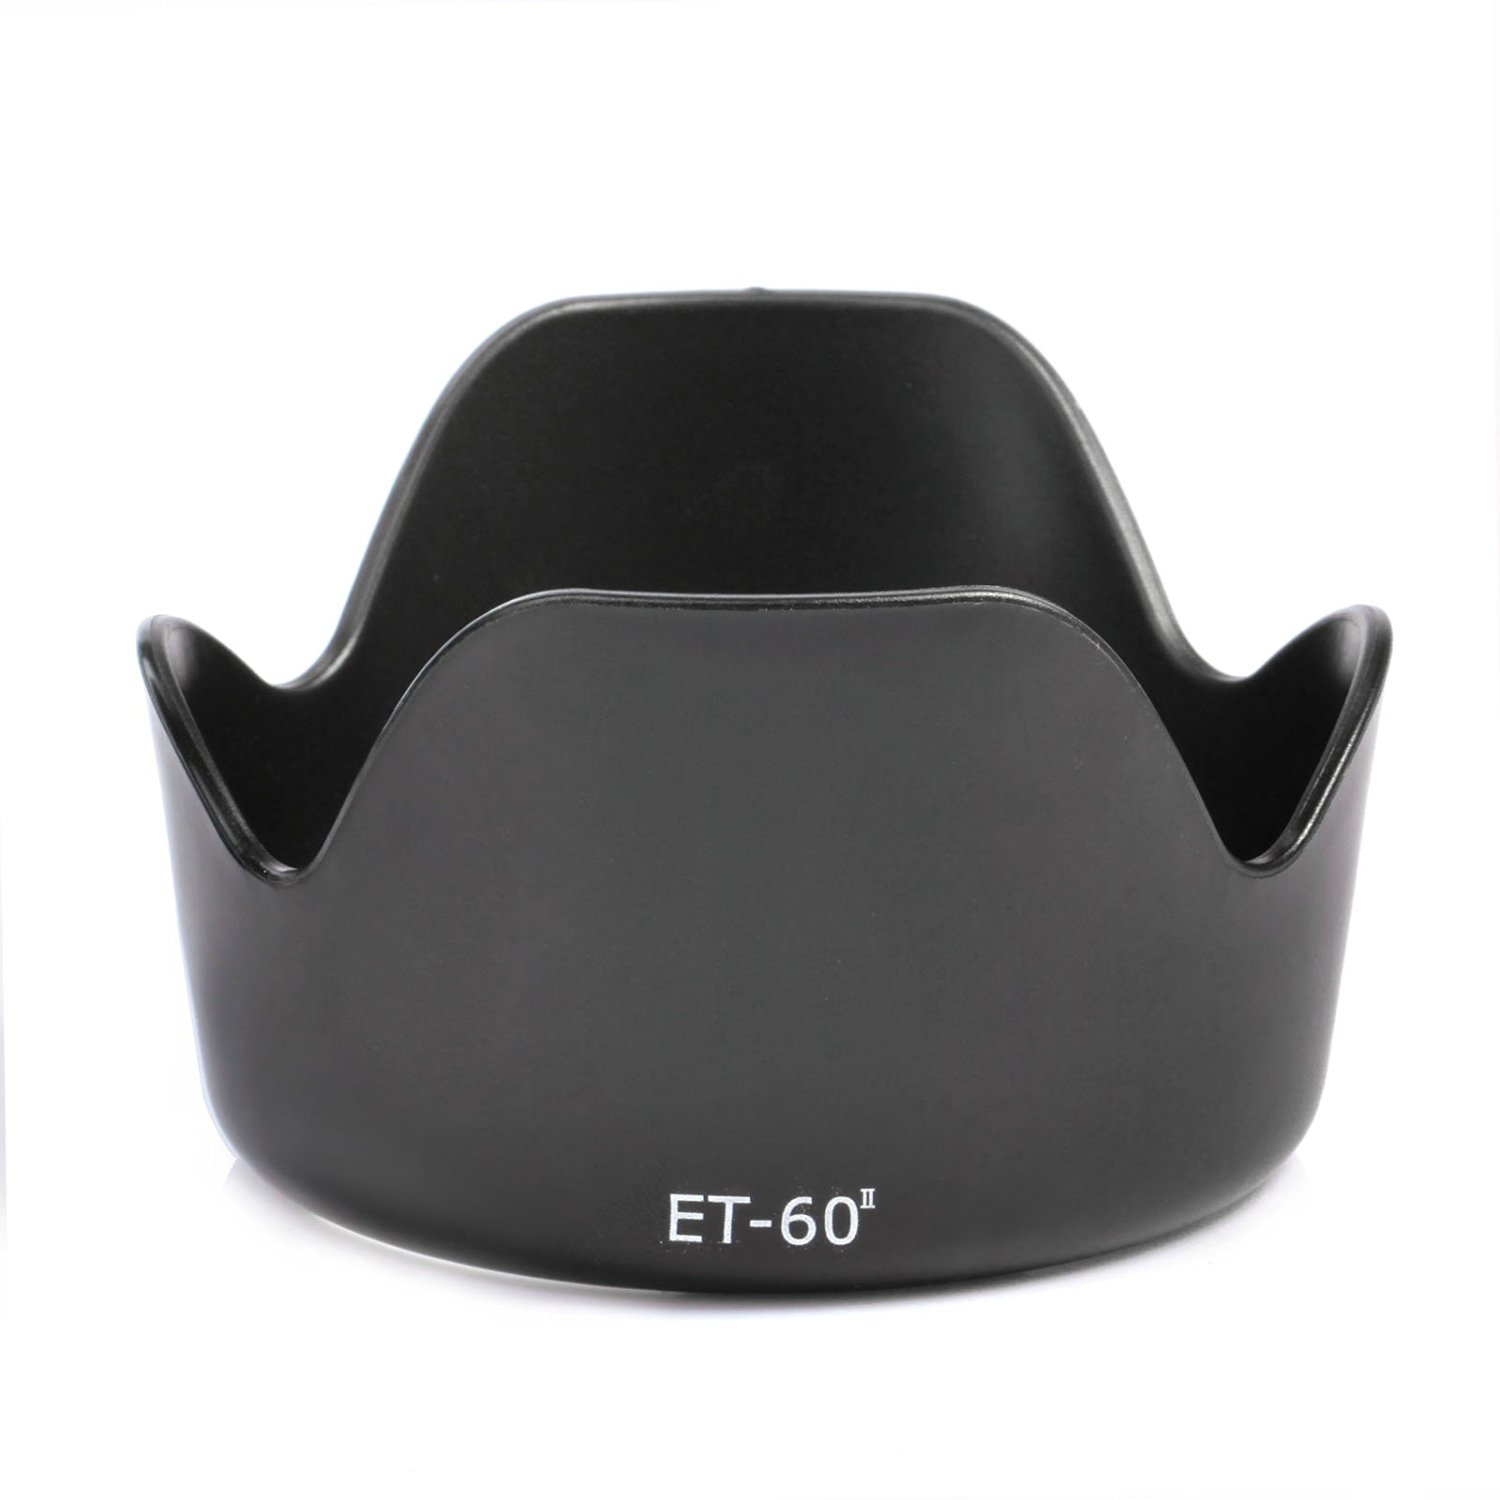 K&F Concept Replacement For ET-60 II Lens Hood For Canon EF 75-300mm f/4.0-5.6 USM II II USM III III USM Lenses For Canon EF-S 55-250mm F/4-5.6 IS Lens